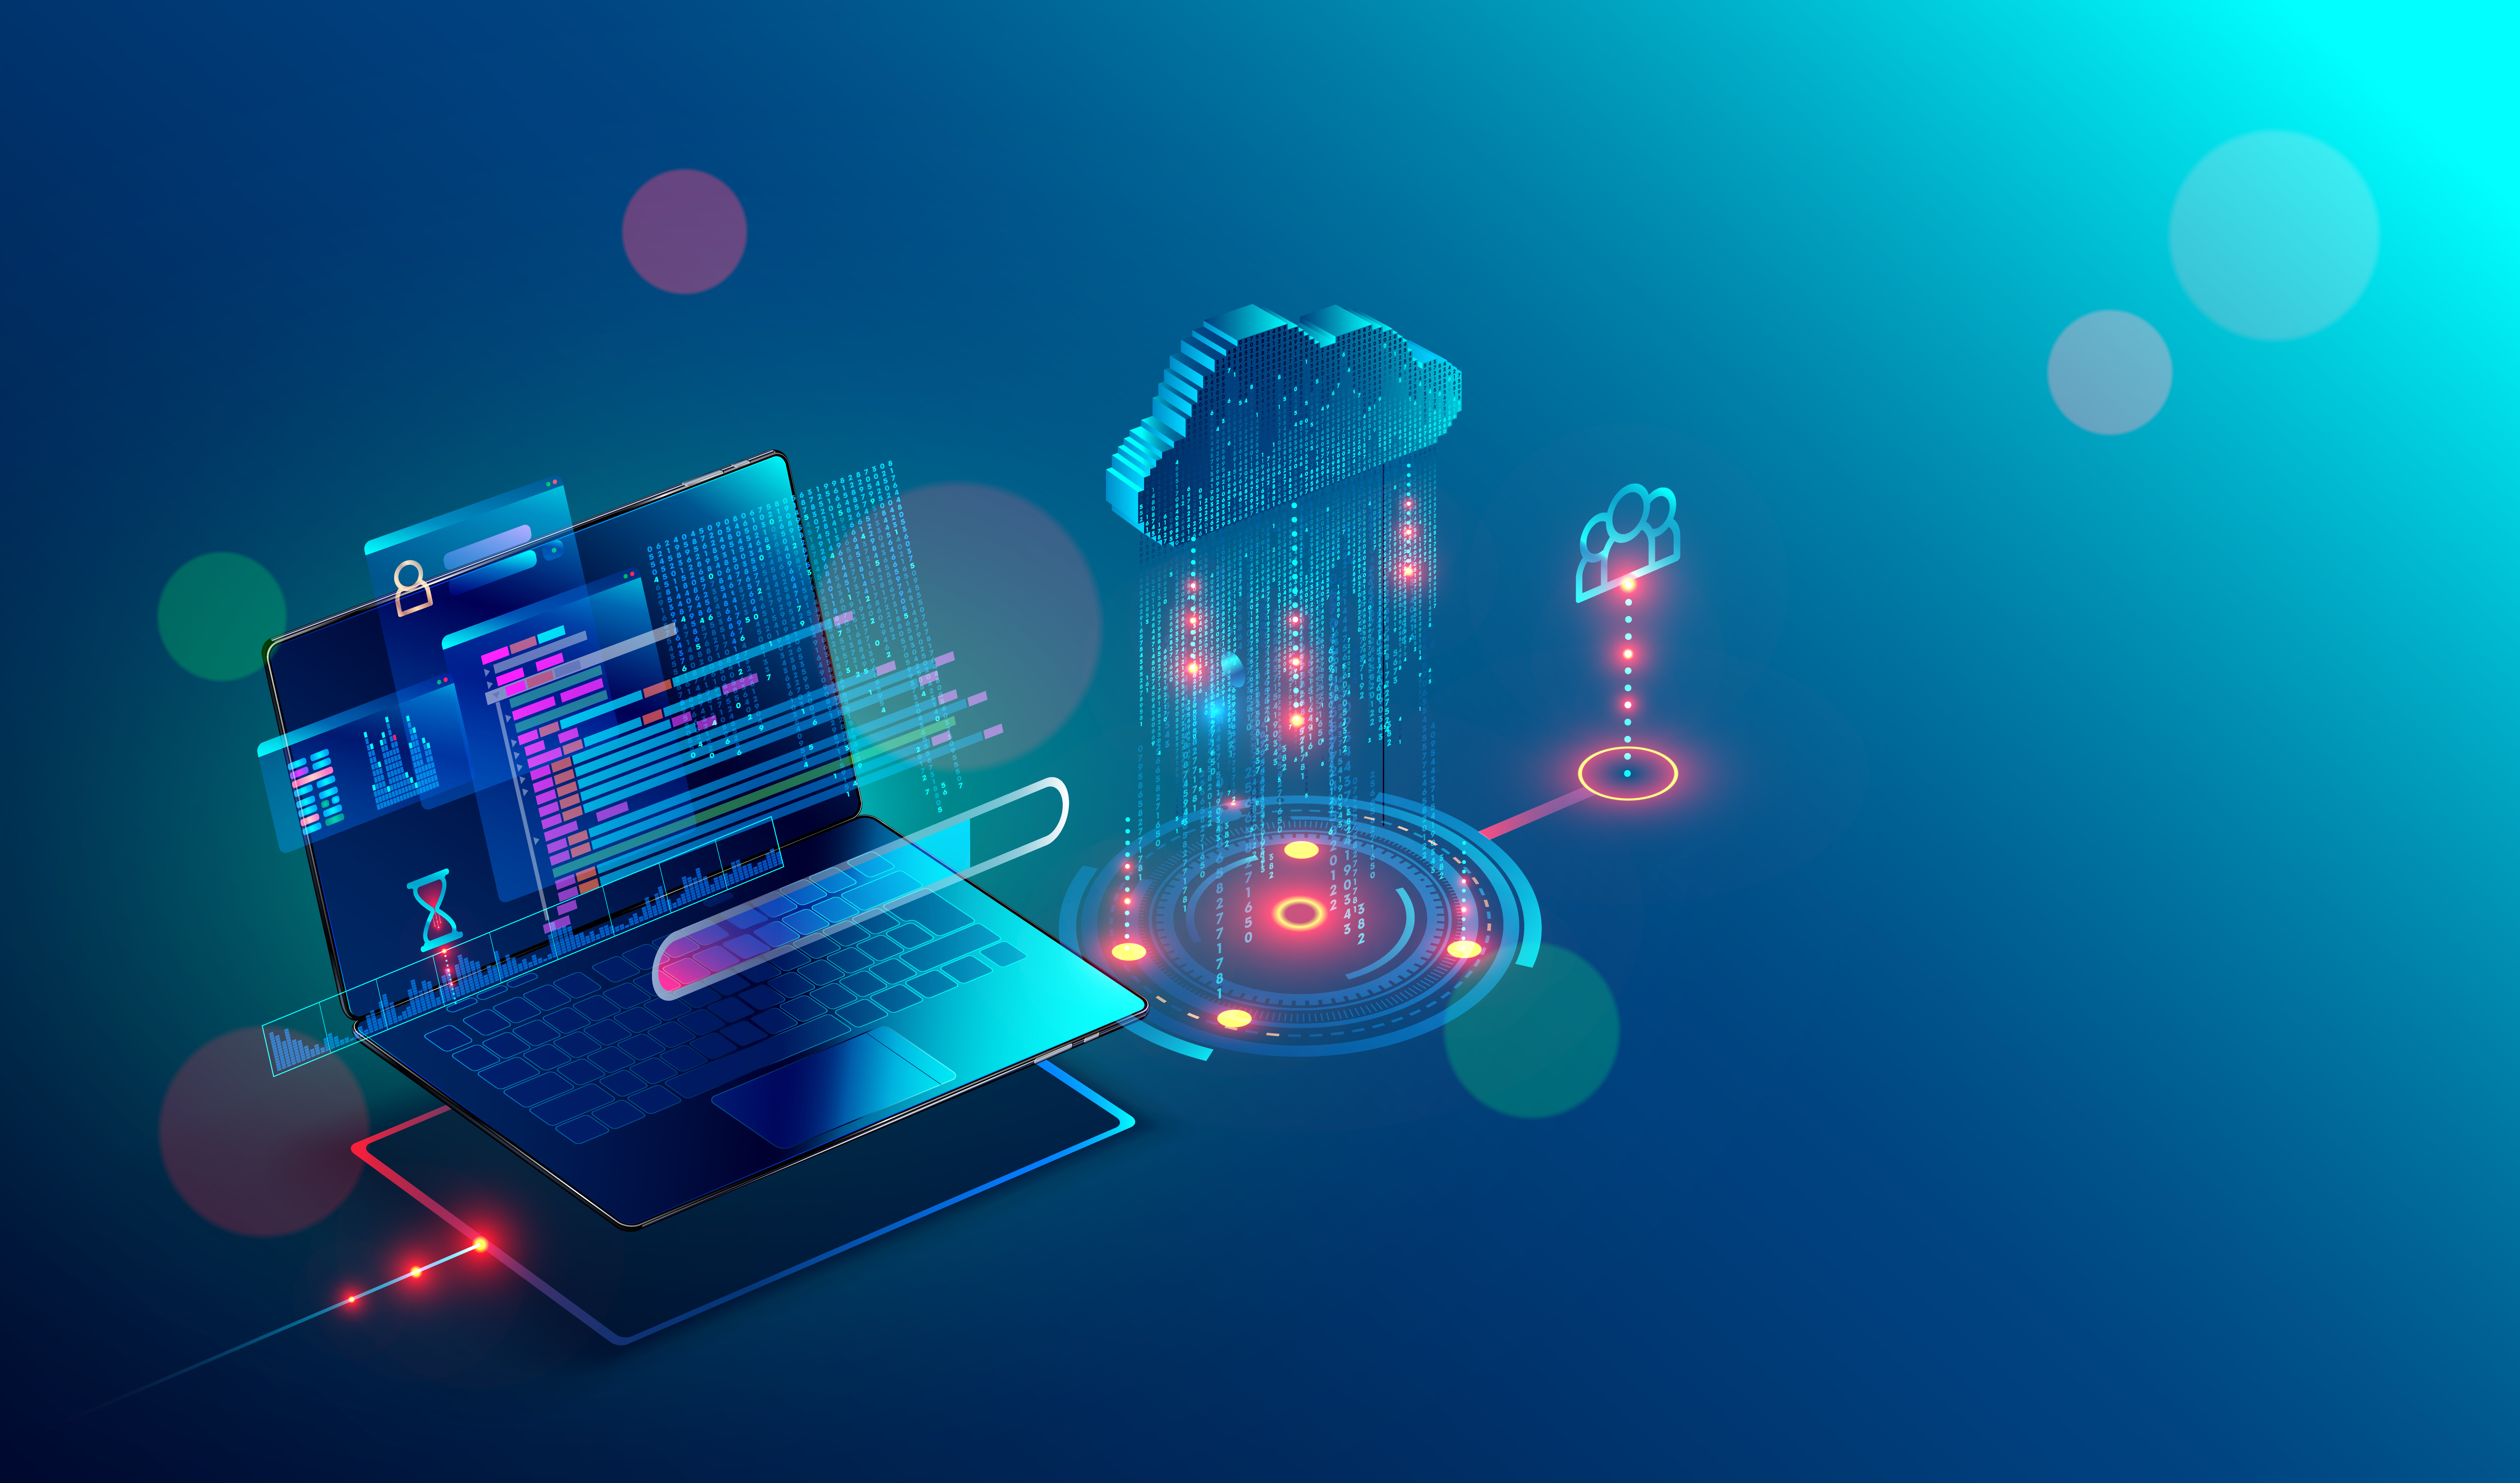 laptop connection on cloud storage for collaboration work with remote team. Cooperation work via internet and work with project in shared access. Isometric infographic concept.